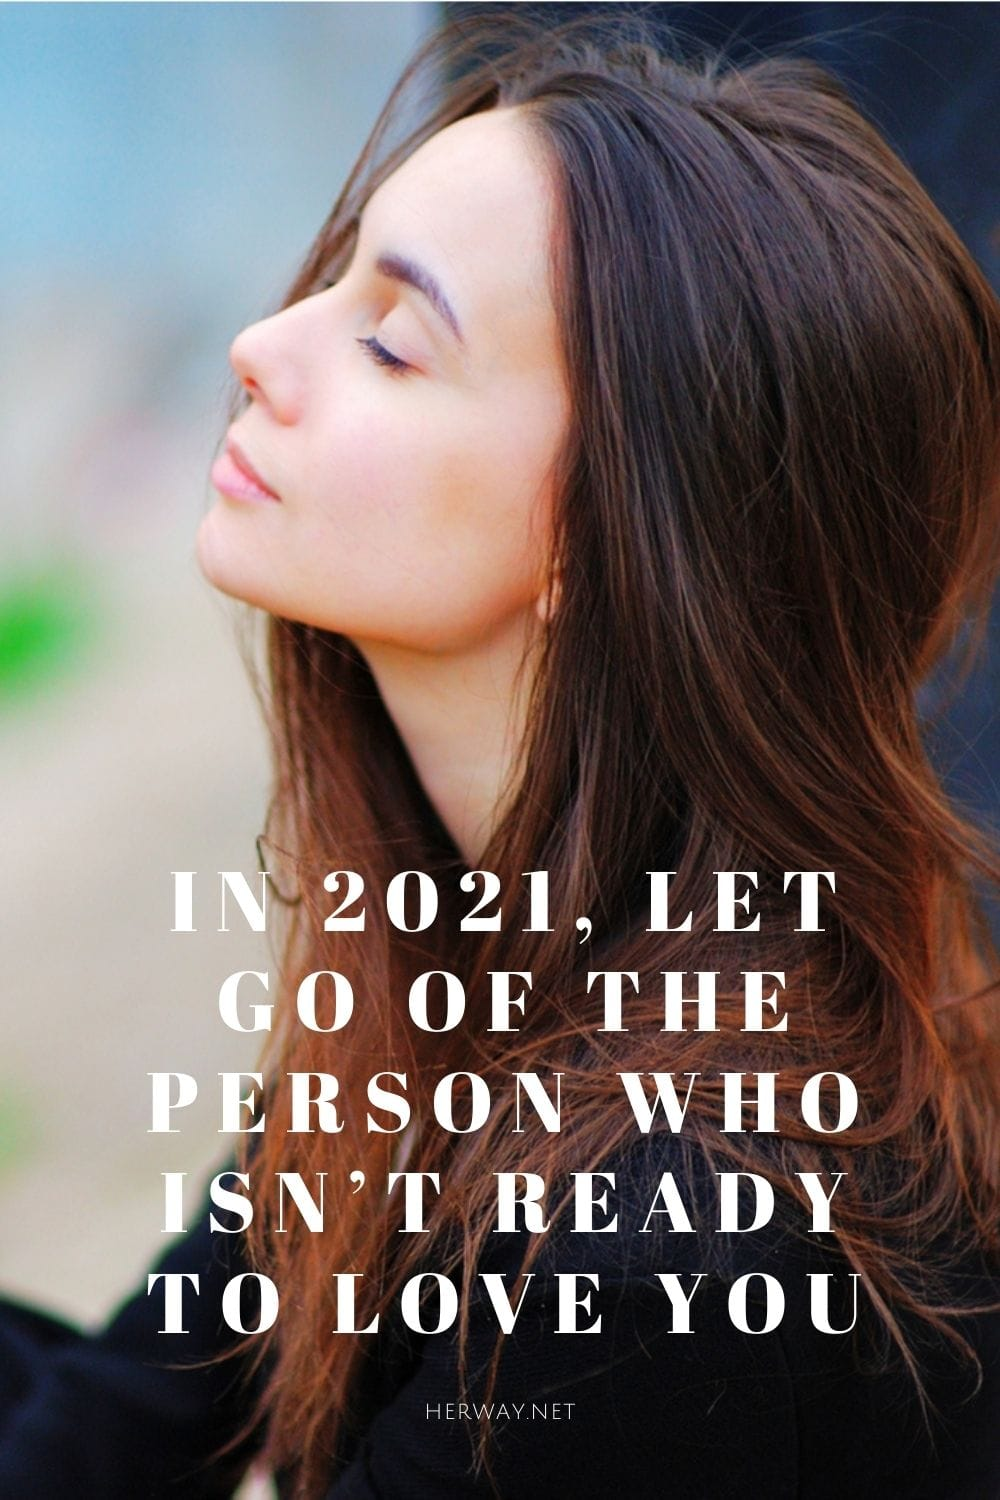 In 2021, Let Go Of The Person Who Isn't Ready To Love You